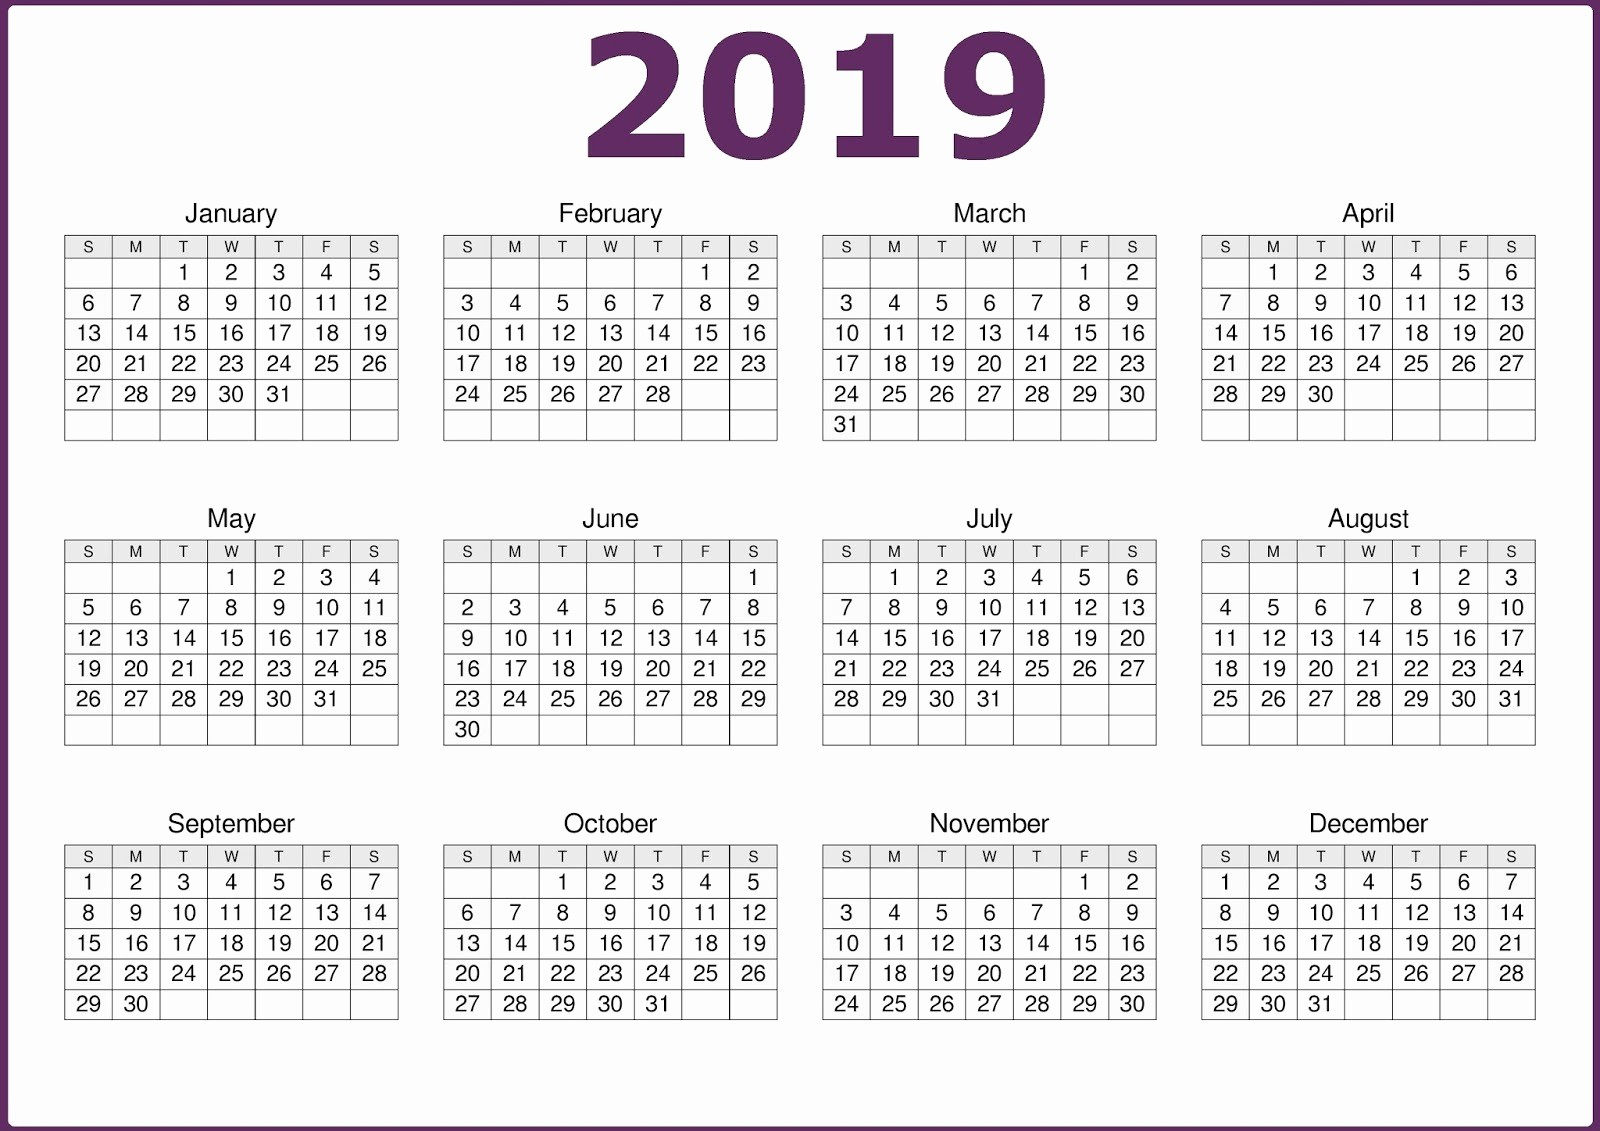 2019 Yearly Calendar One Page Inspirational E Page 2019 Printable Calendar Free Download